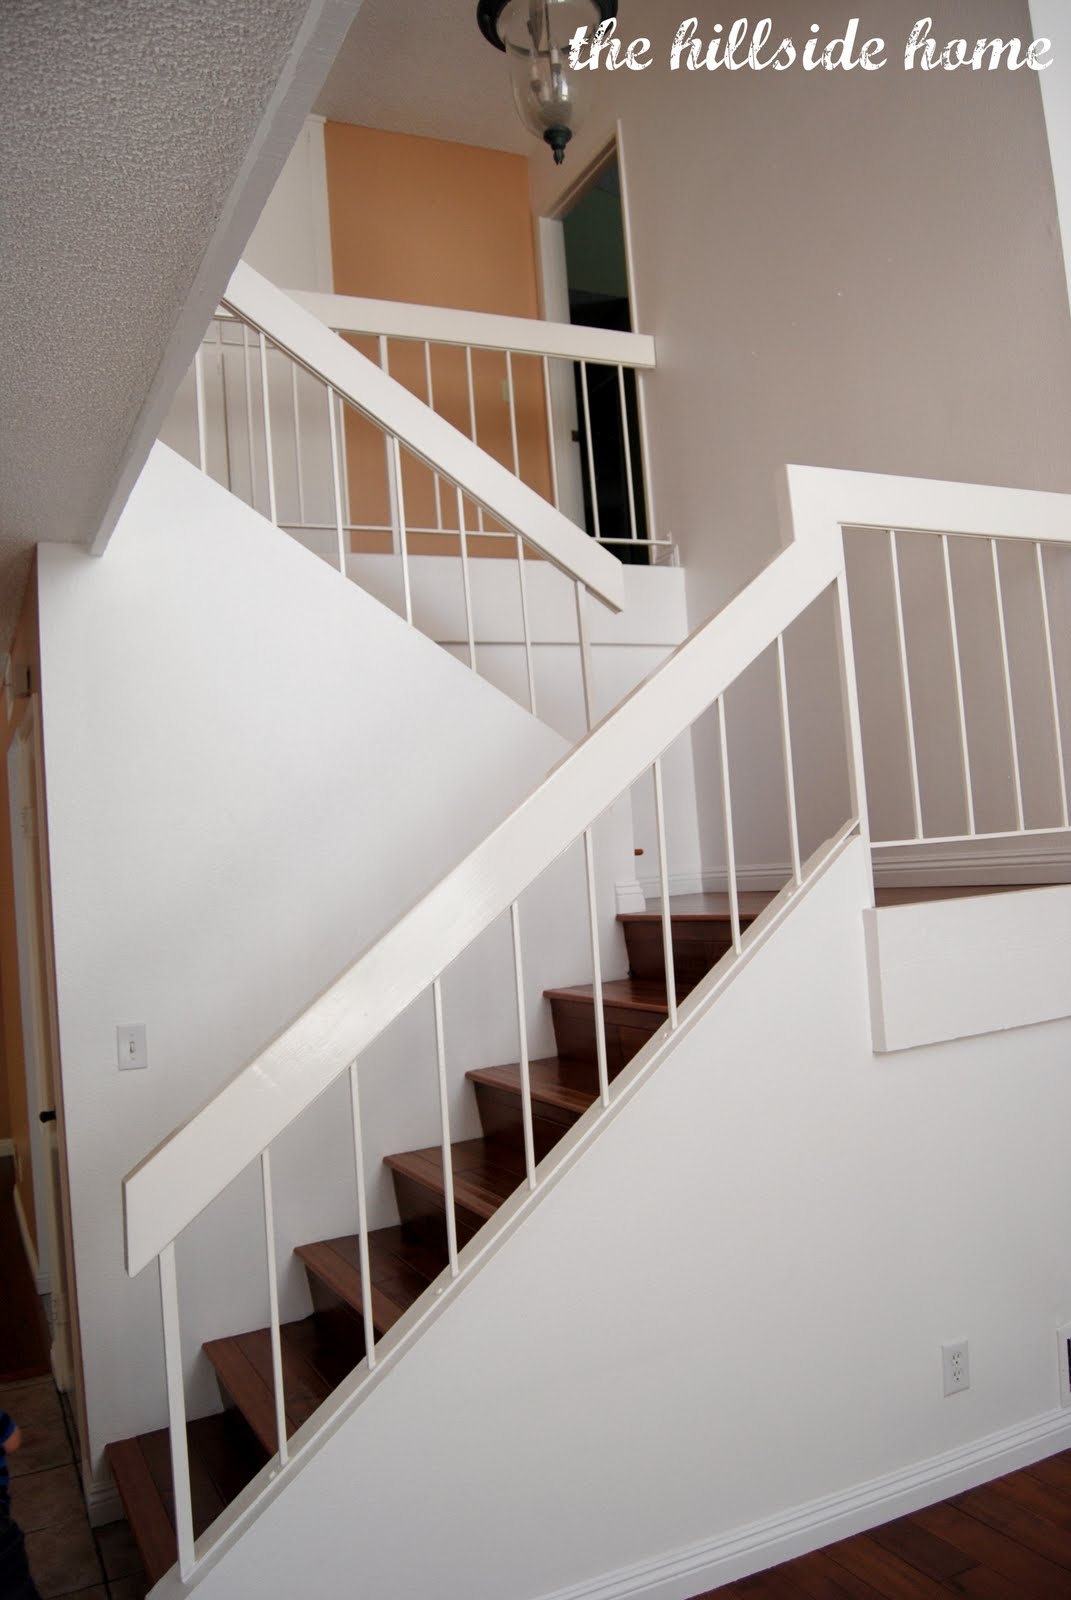 Remodelaholic Brand New Stair Banister Home Remodel   New Banister For Stairs   Stainless Steel   Traditional   Oak   Contemporary   Indoor